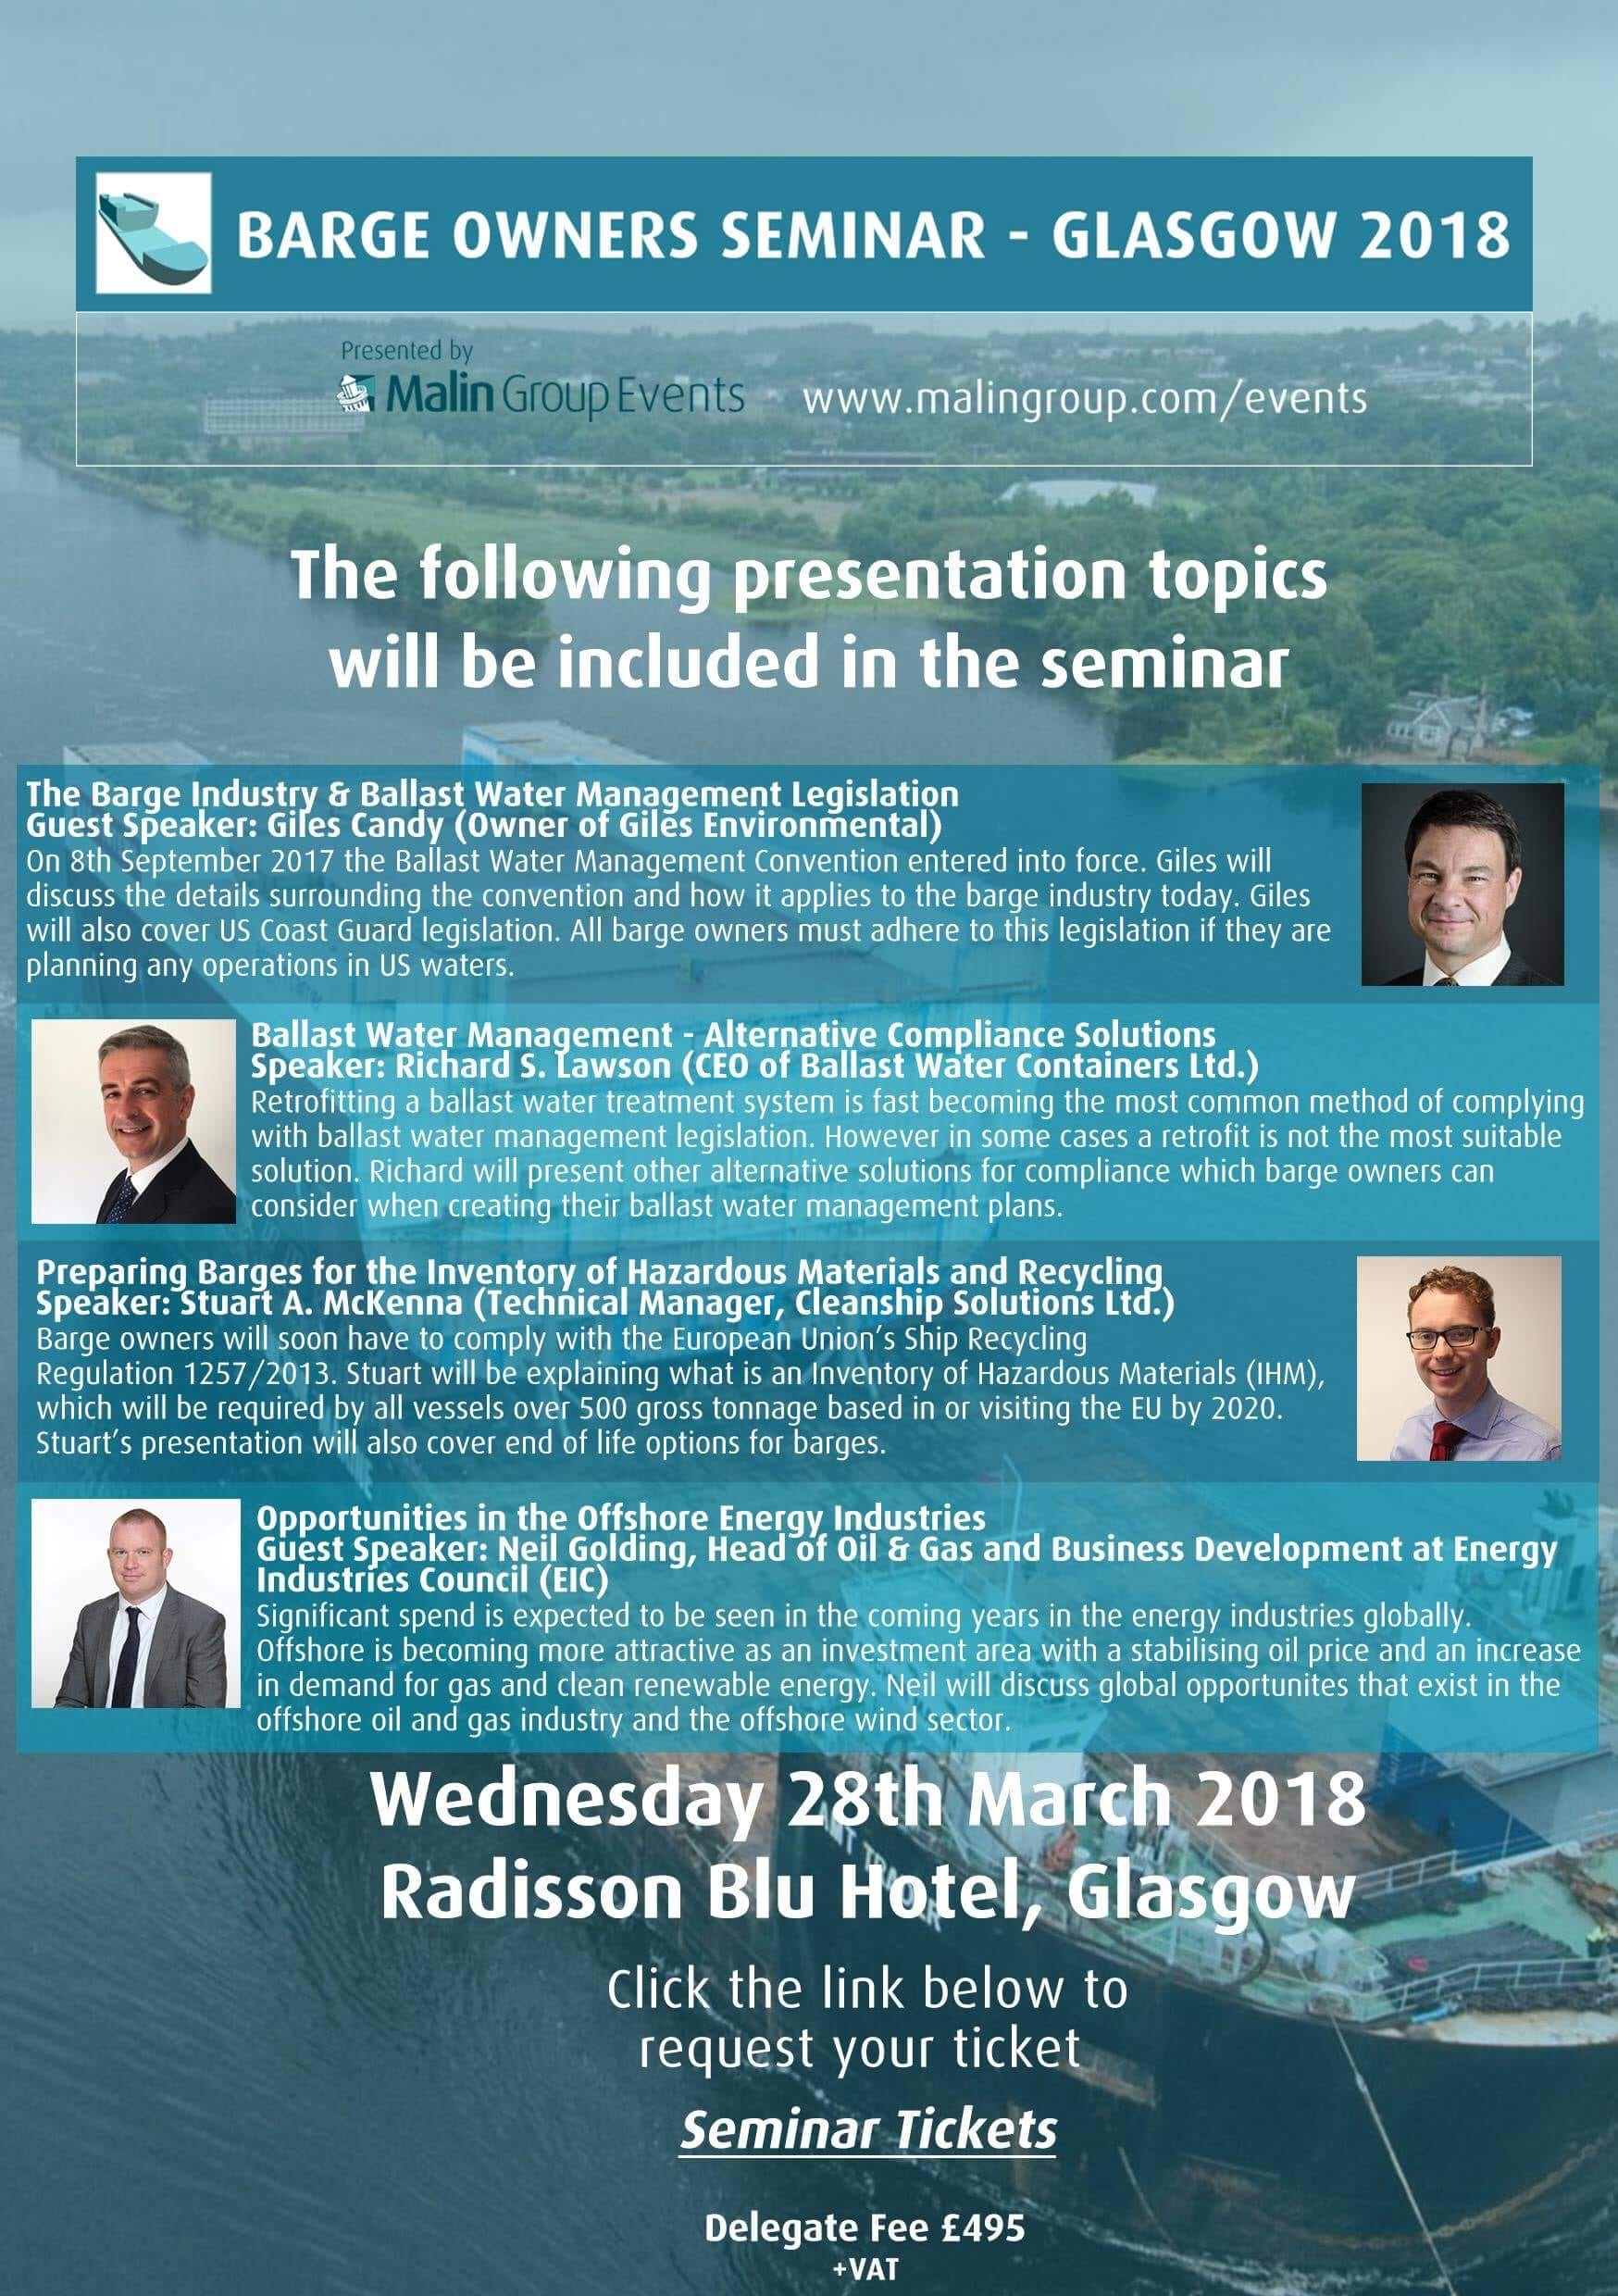 Invitation barge owners seminar glasgow 2018 uk ports the details of speakers and presentation topics below altavistaventures Image collections